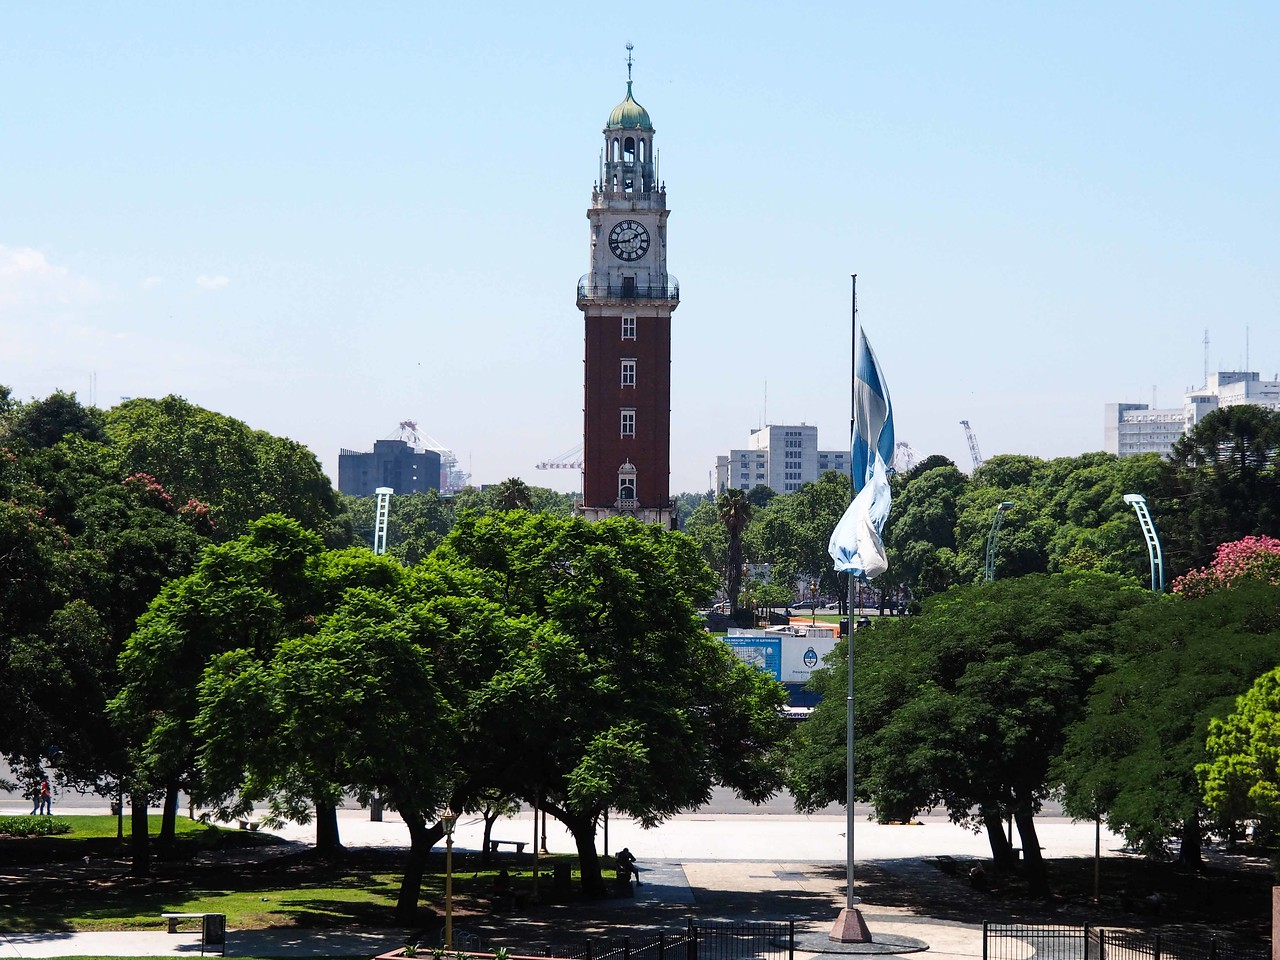 The British Tower, Parque San Martin, Buenos Aires